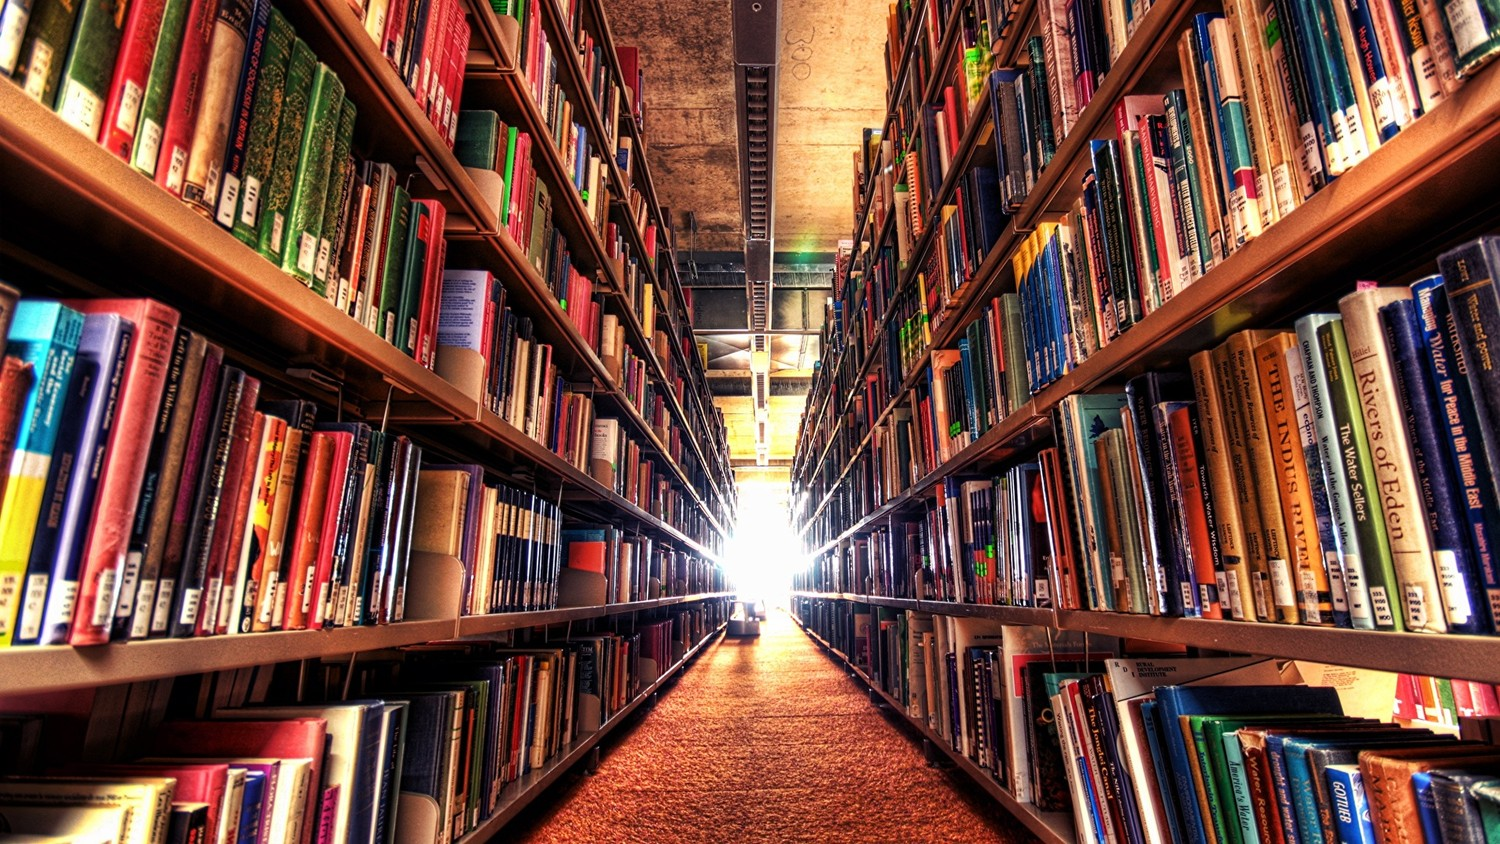 Library_Book_532388_2048x1152